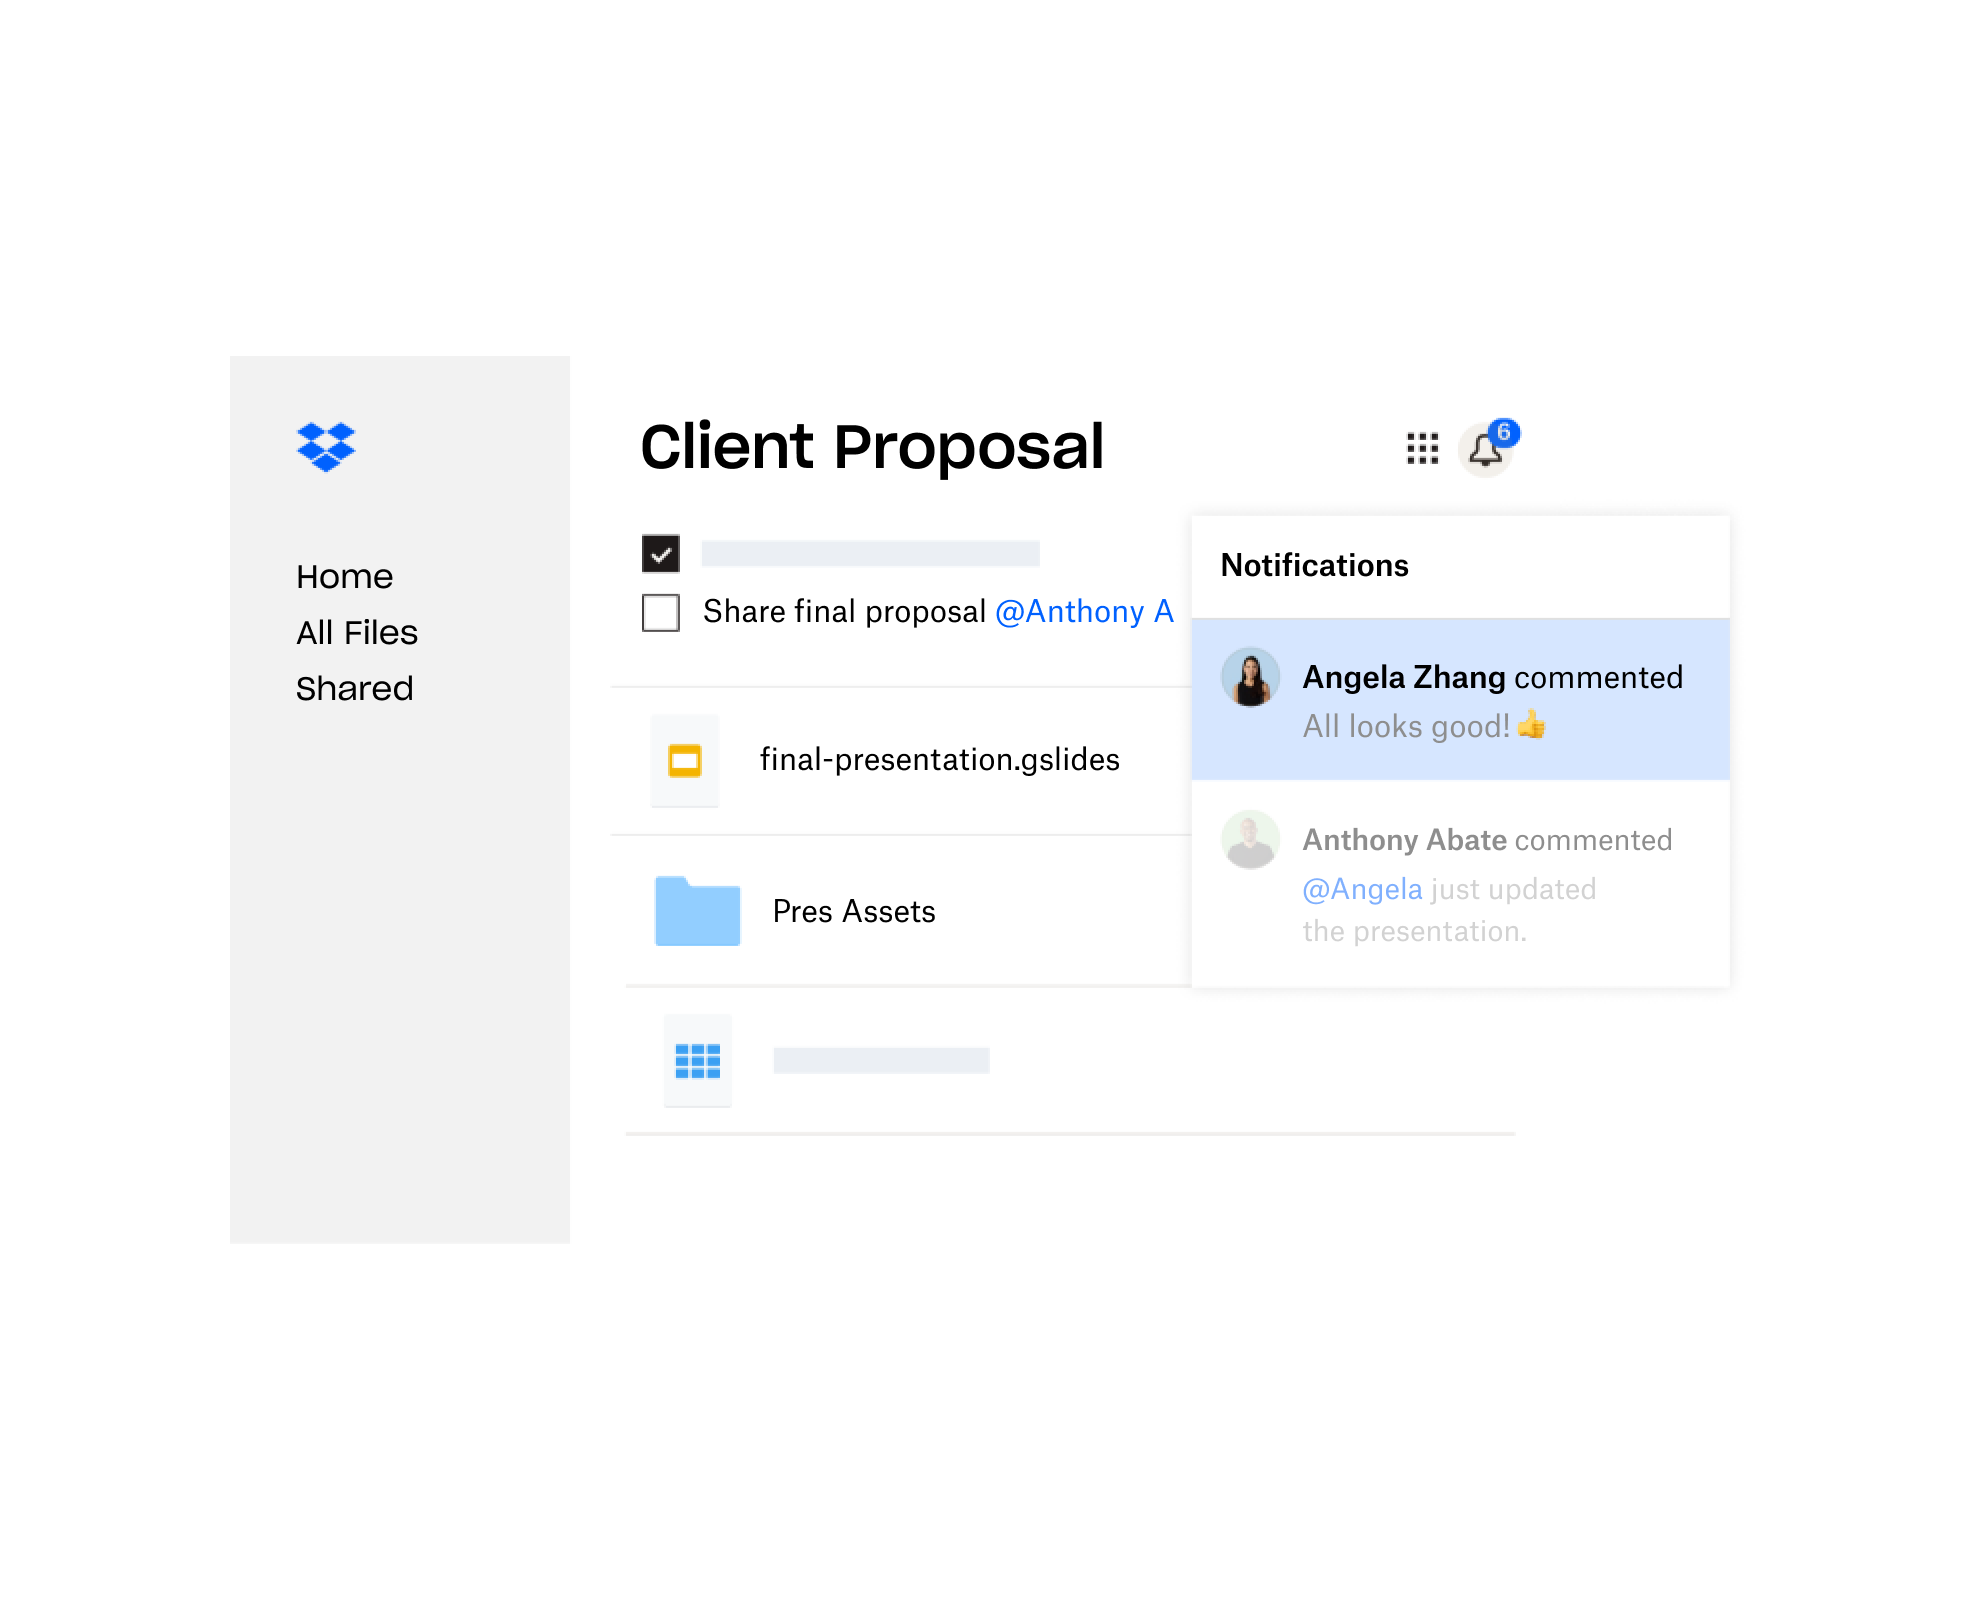 A client proposal created in Dropbox is shared with multiple users who have left feedback